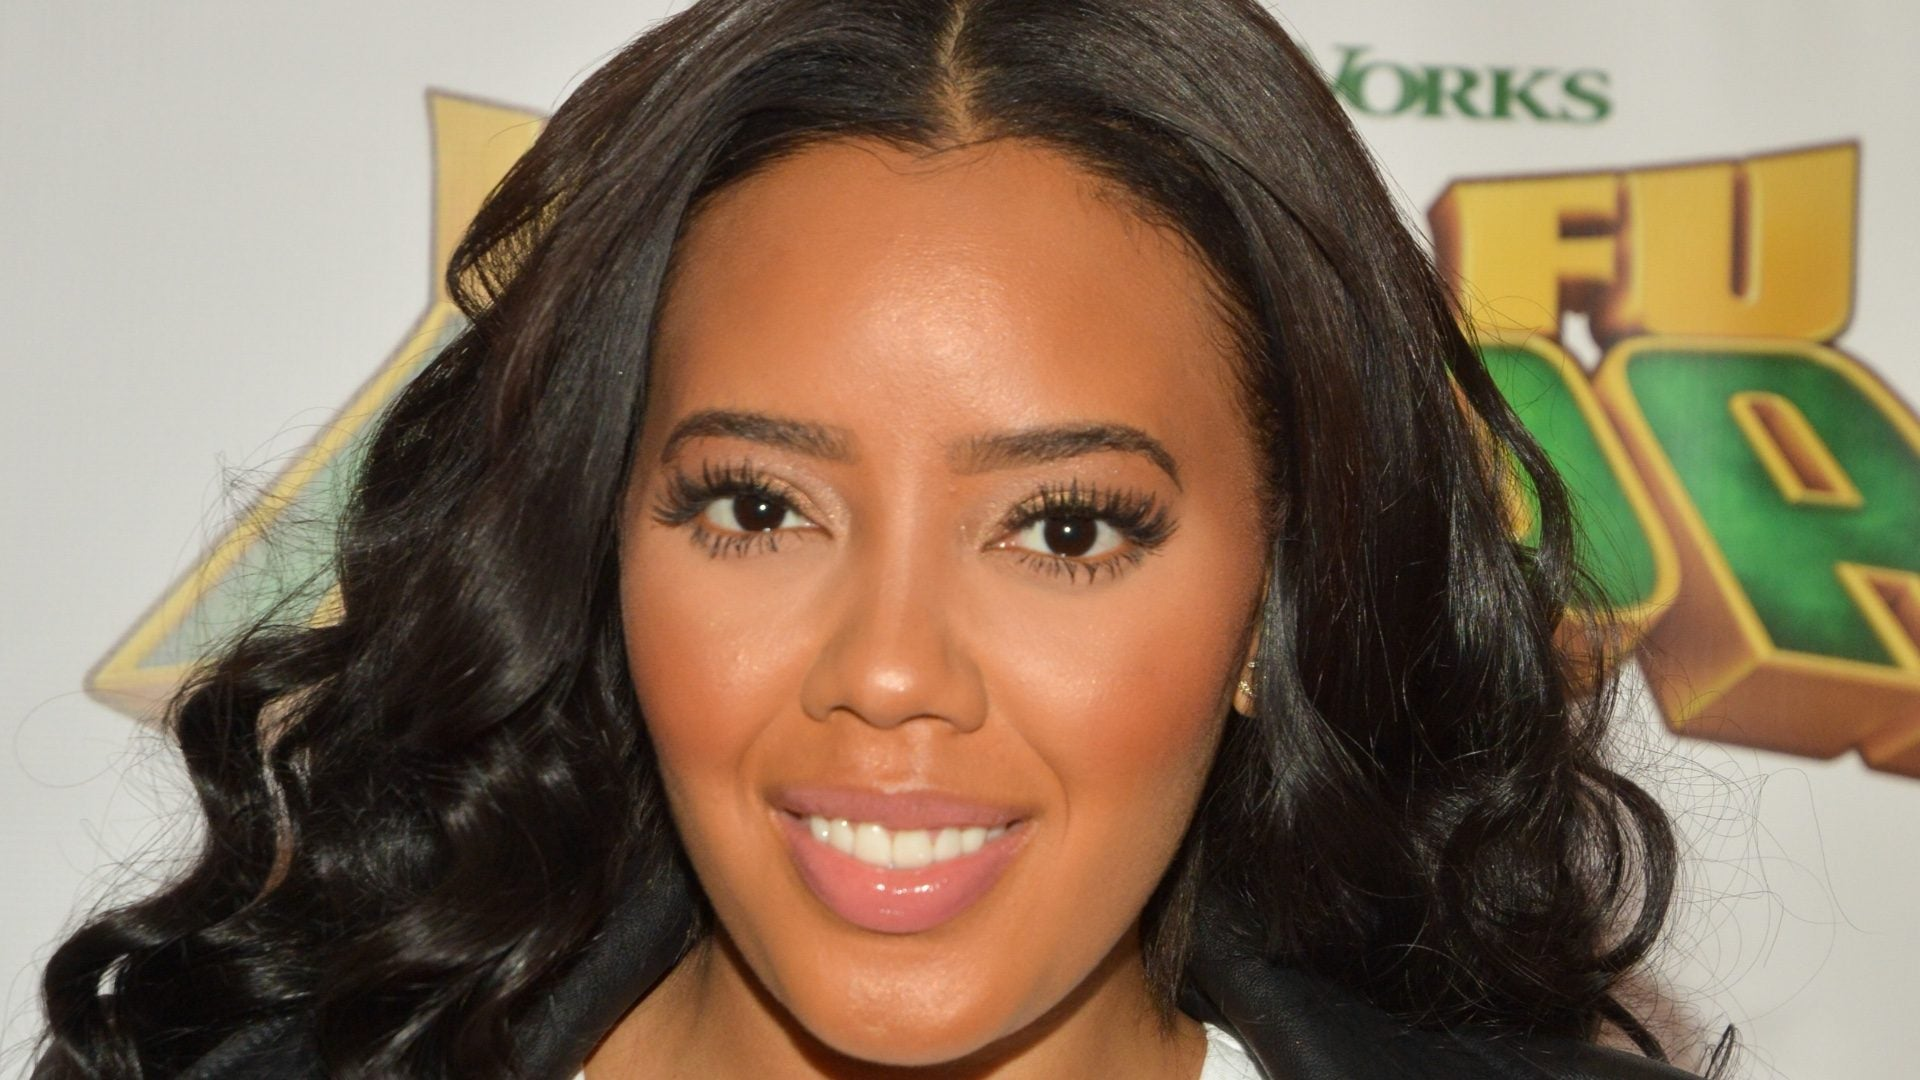 Angela Simmons Drops The First Product From Her New Skin Care Line